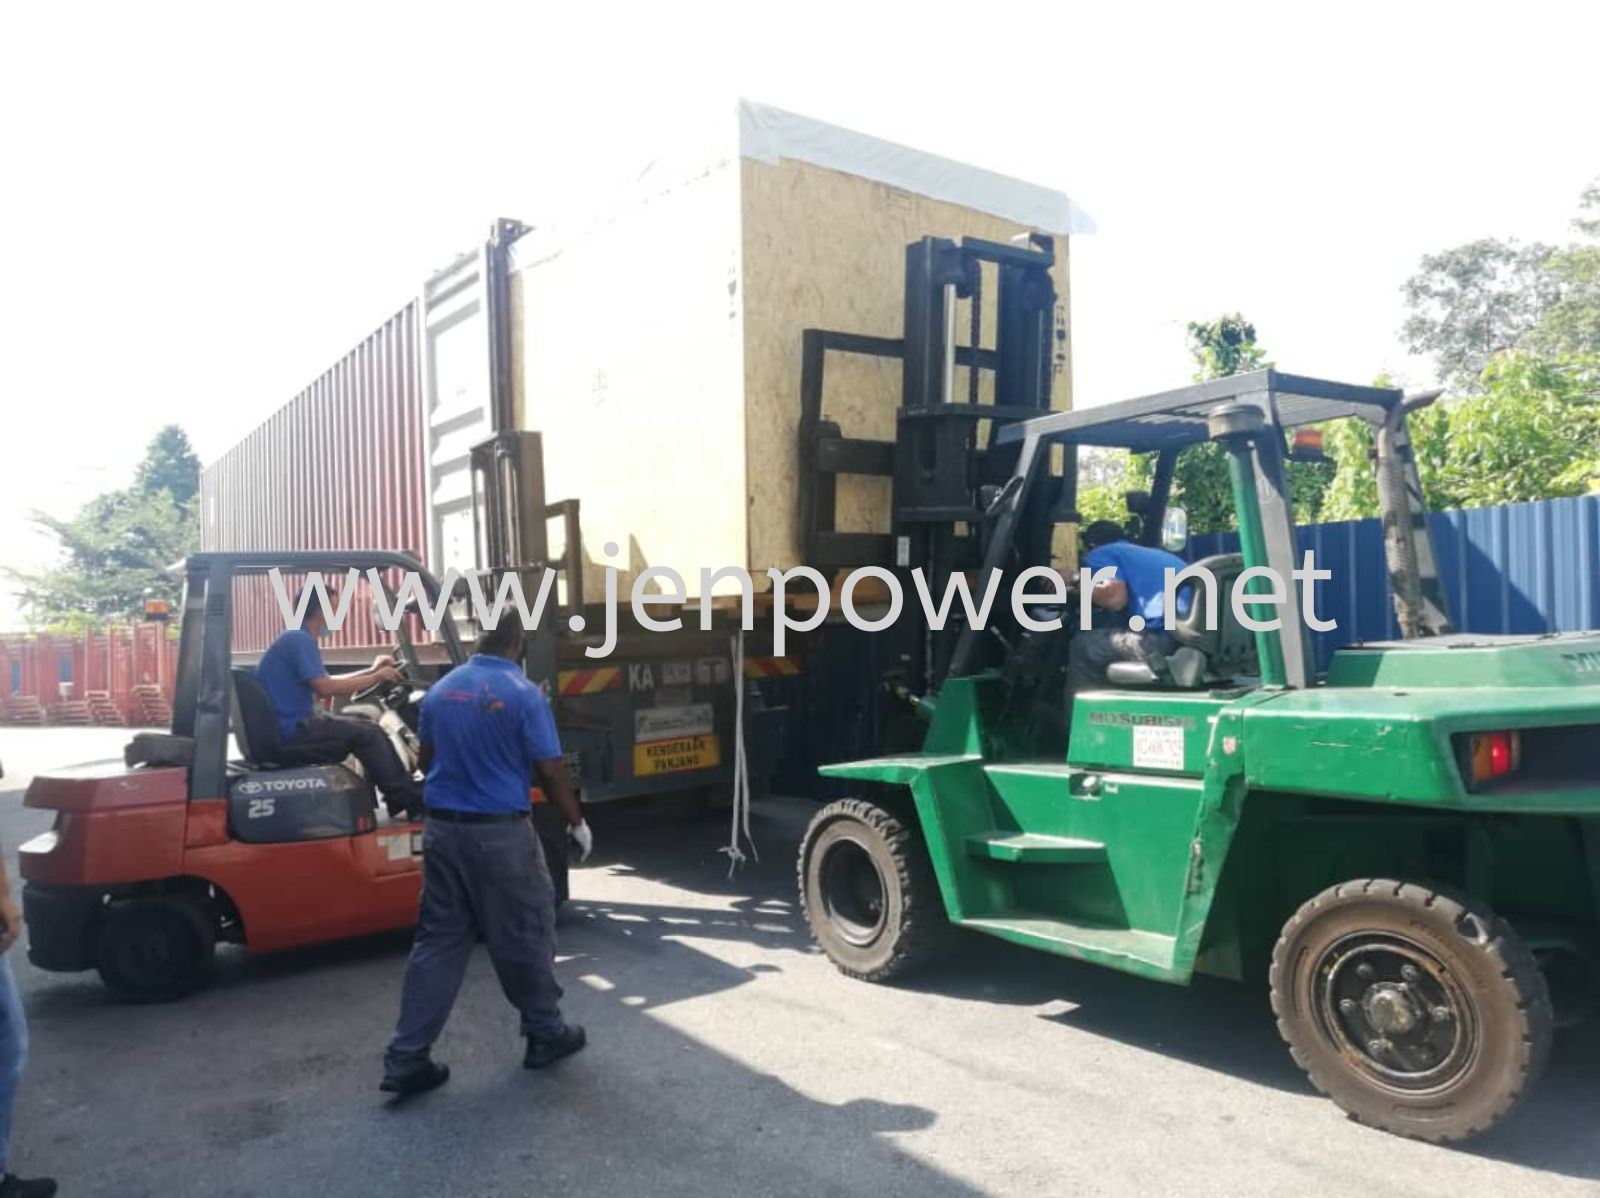 Mover with forklift